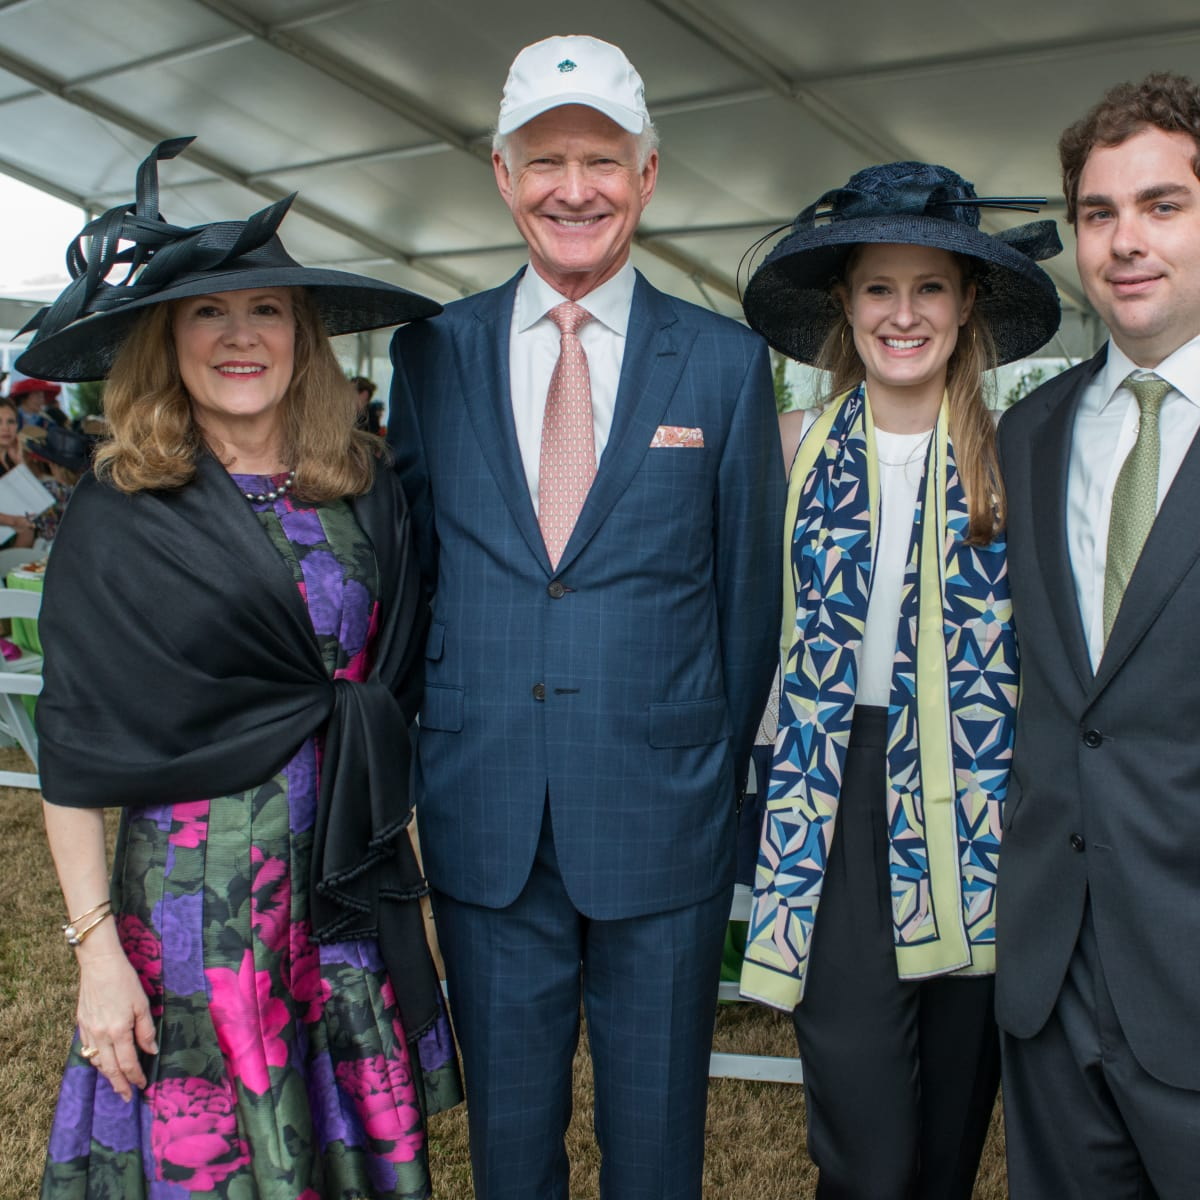 Hats in the Park, March 2016, Linda Hunsaker, Barry Hunsaker, Kelly Leonard, David Leonard